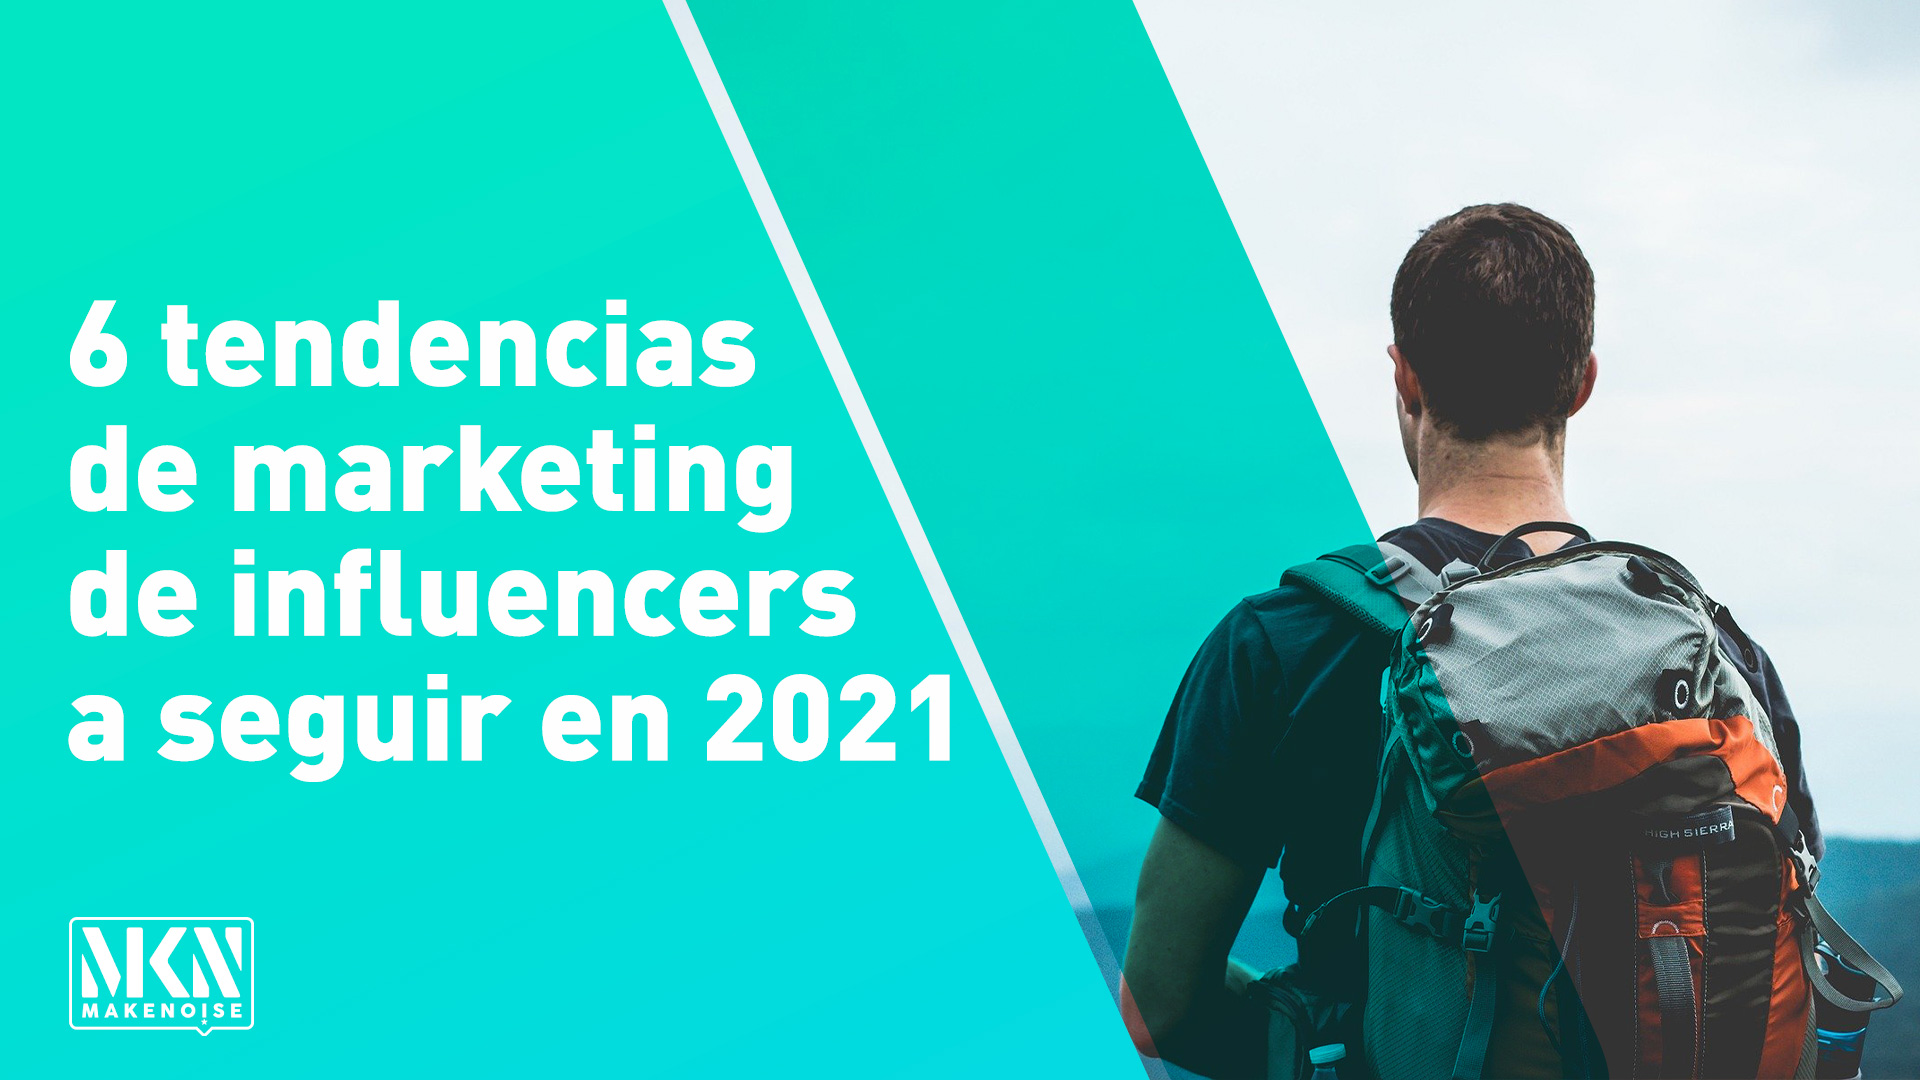 Seis tendencias de marketing de influencers a seguir en 2021